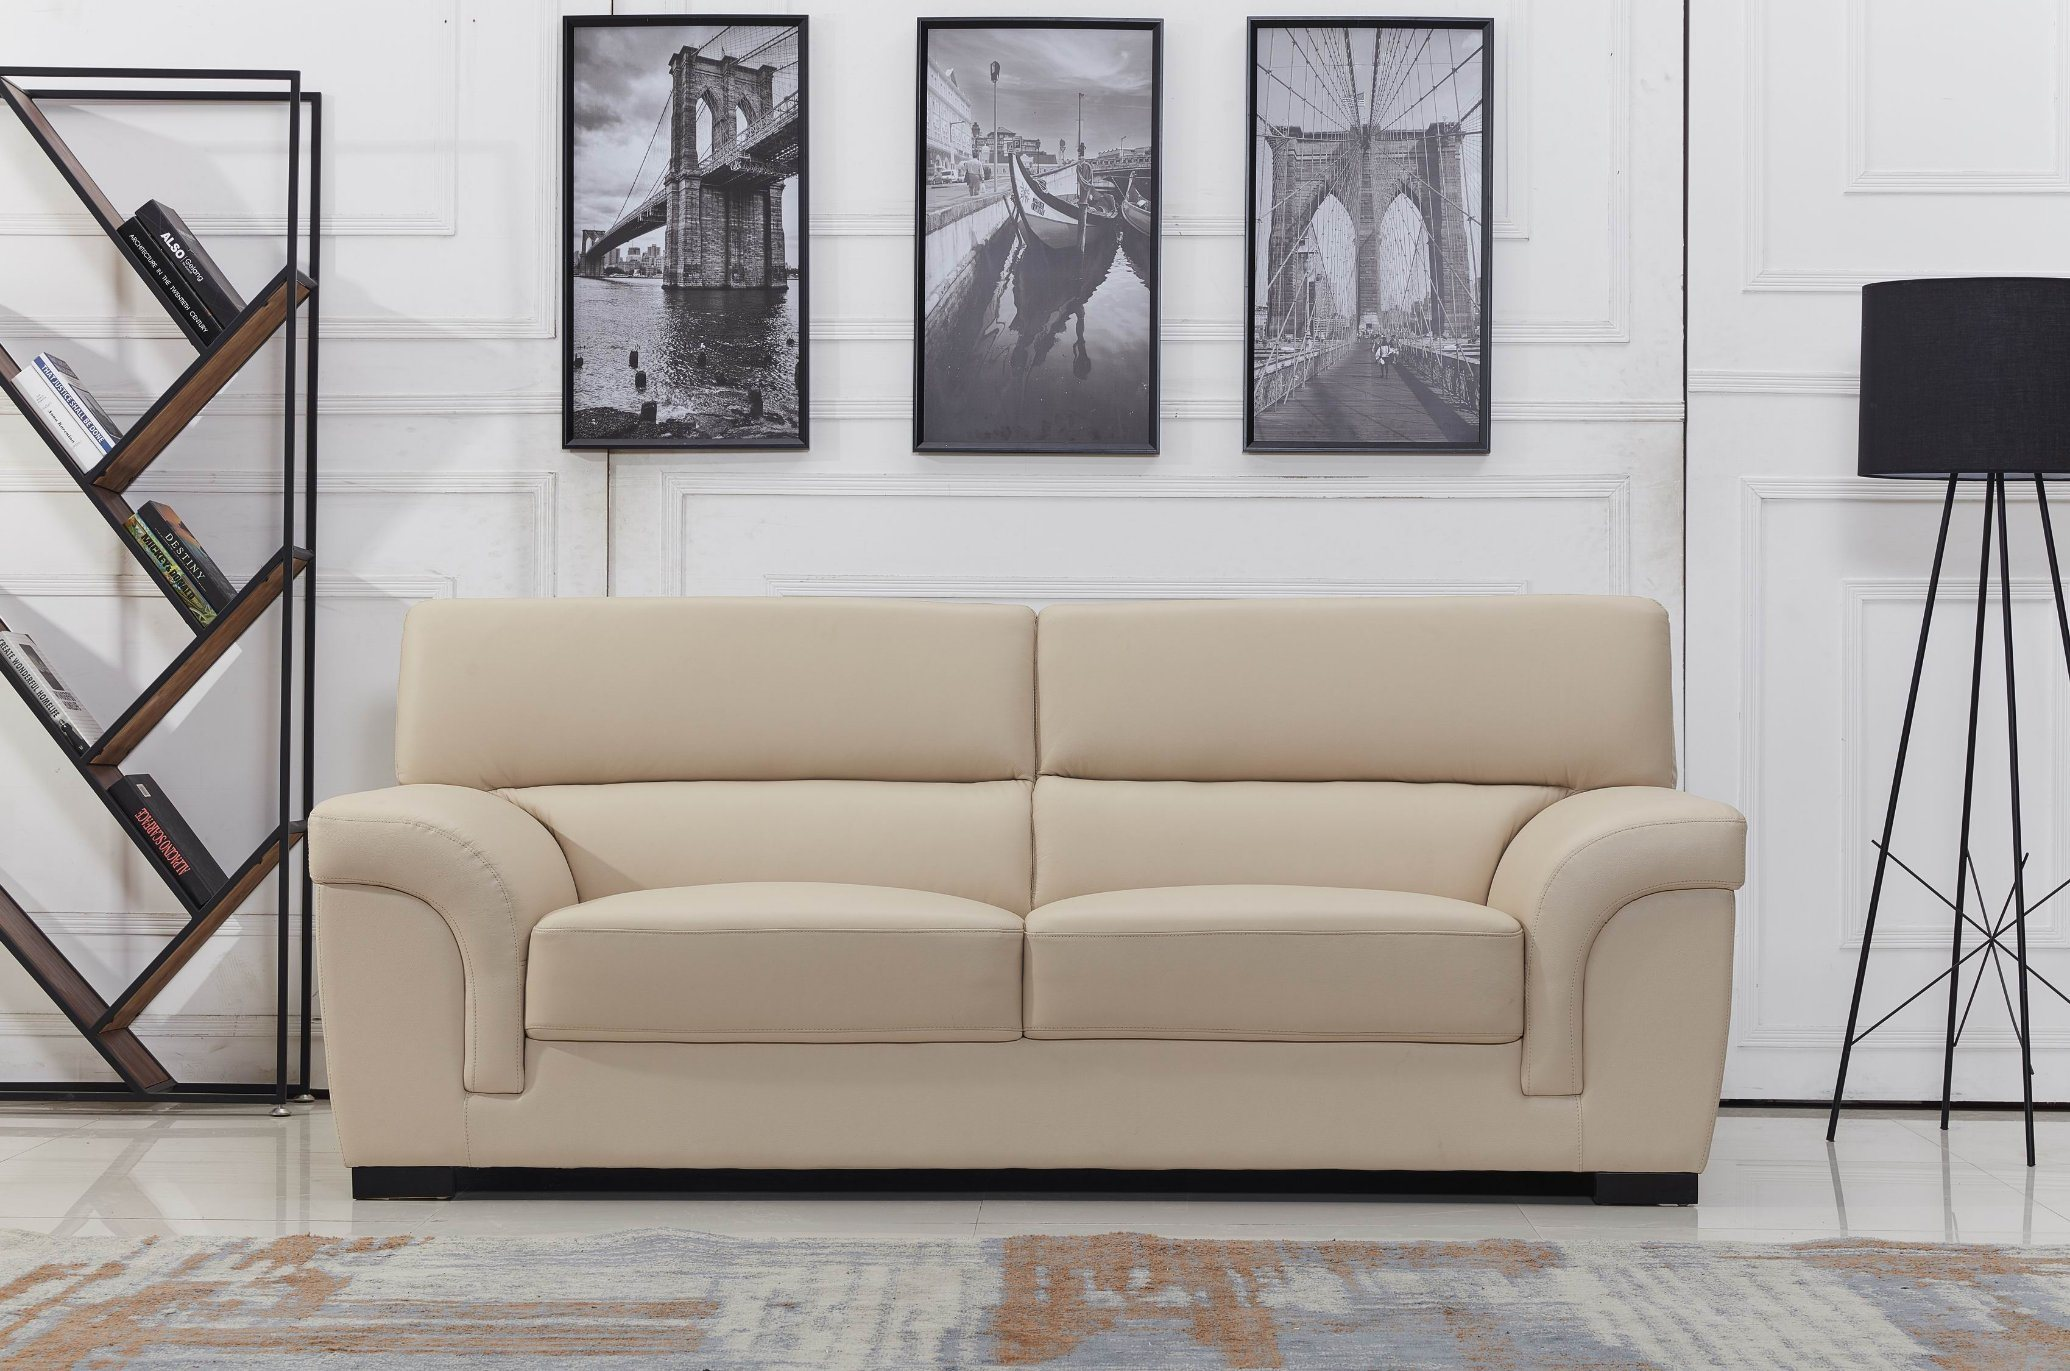 China European Leather Sofa Good Quality Beige Color Photos Pictures Made In China Com